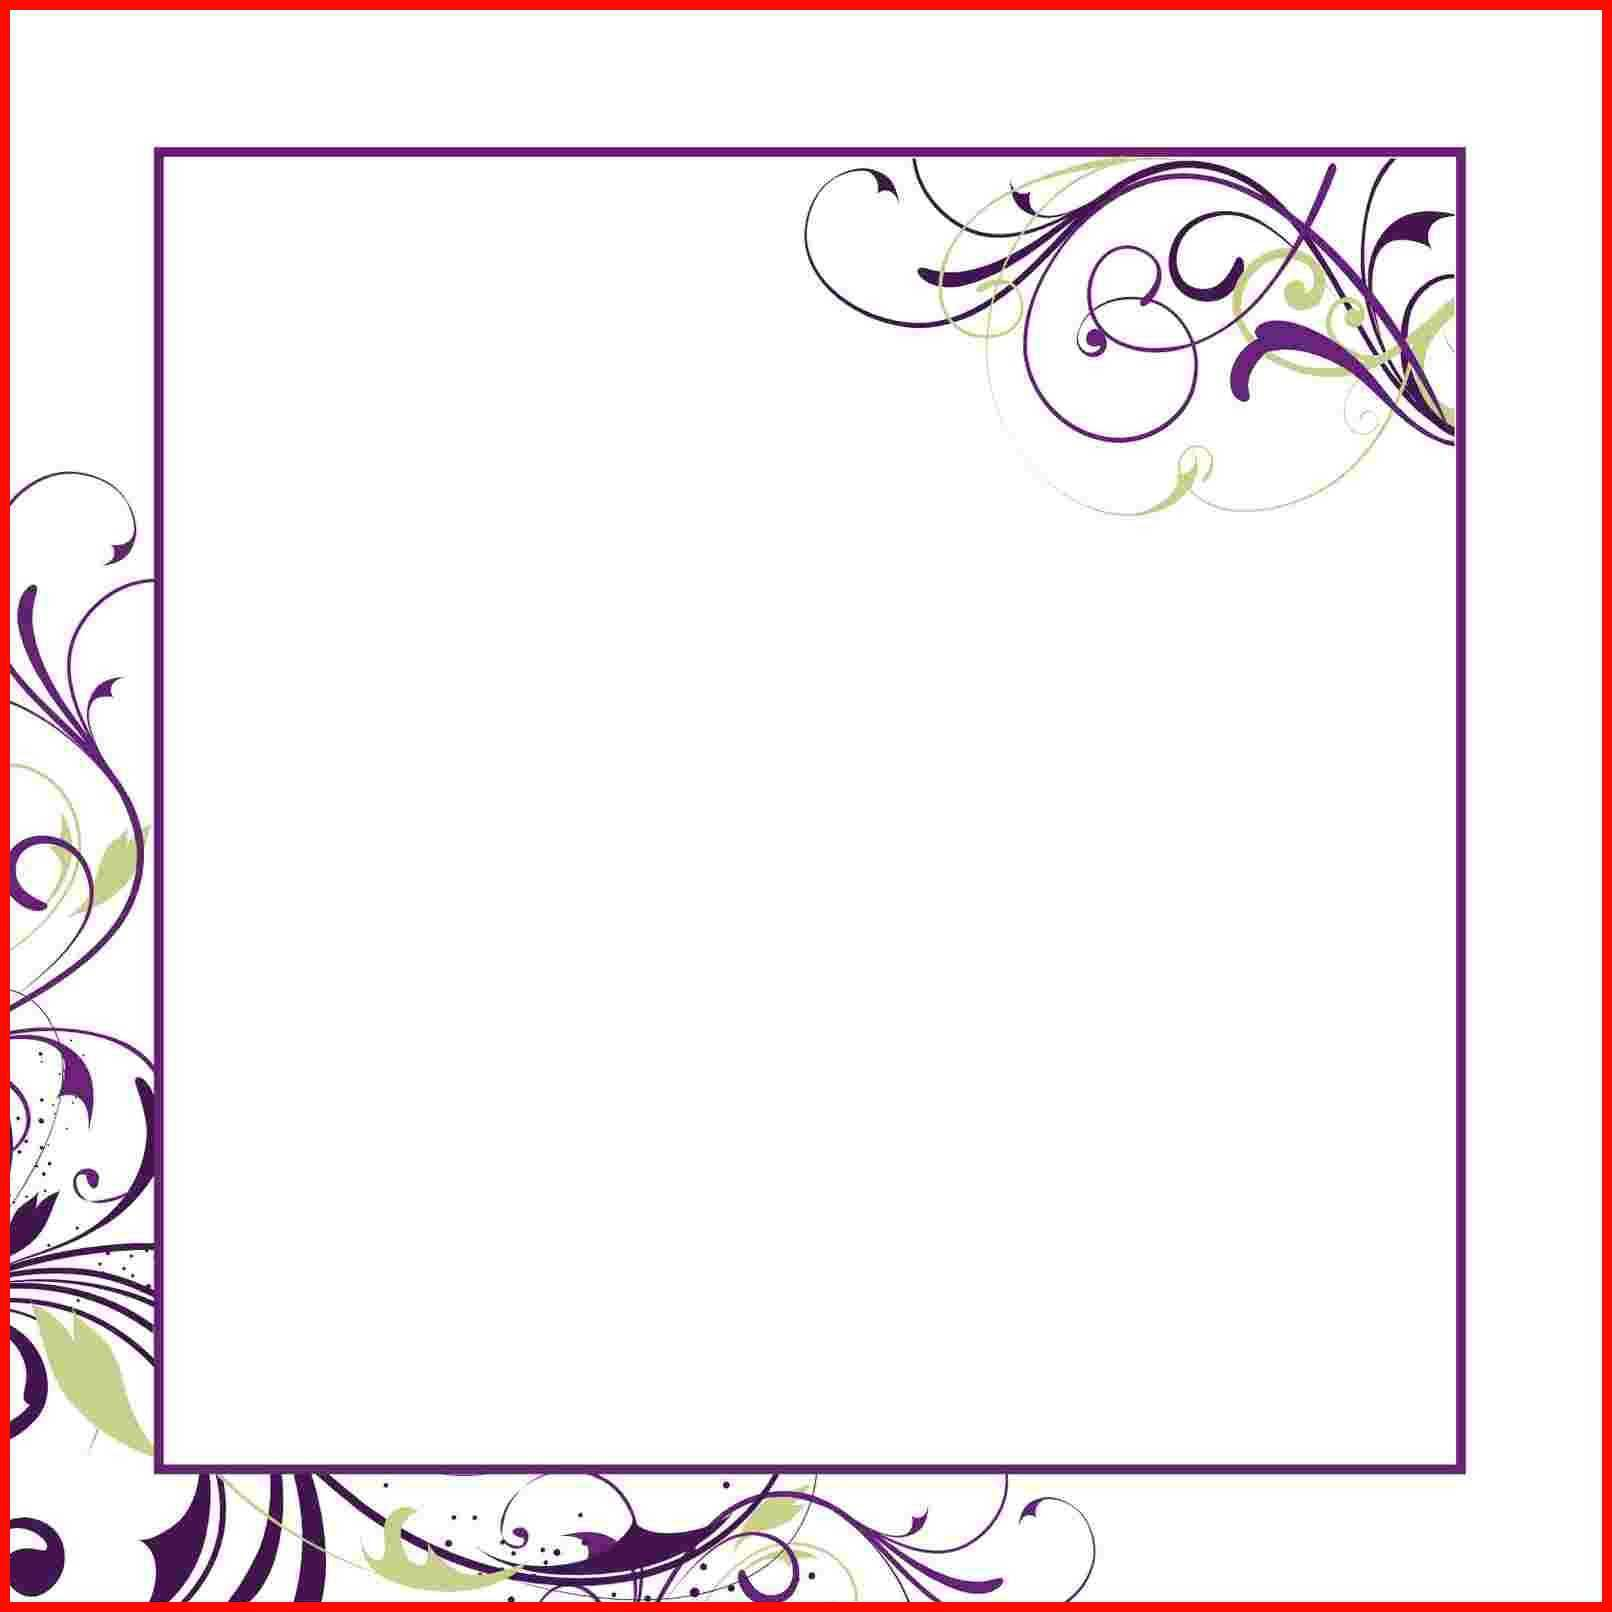 005 Exceptional M Word Invitation Template High Definition  Microsoft Card Wedding Free Download EditableFull